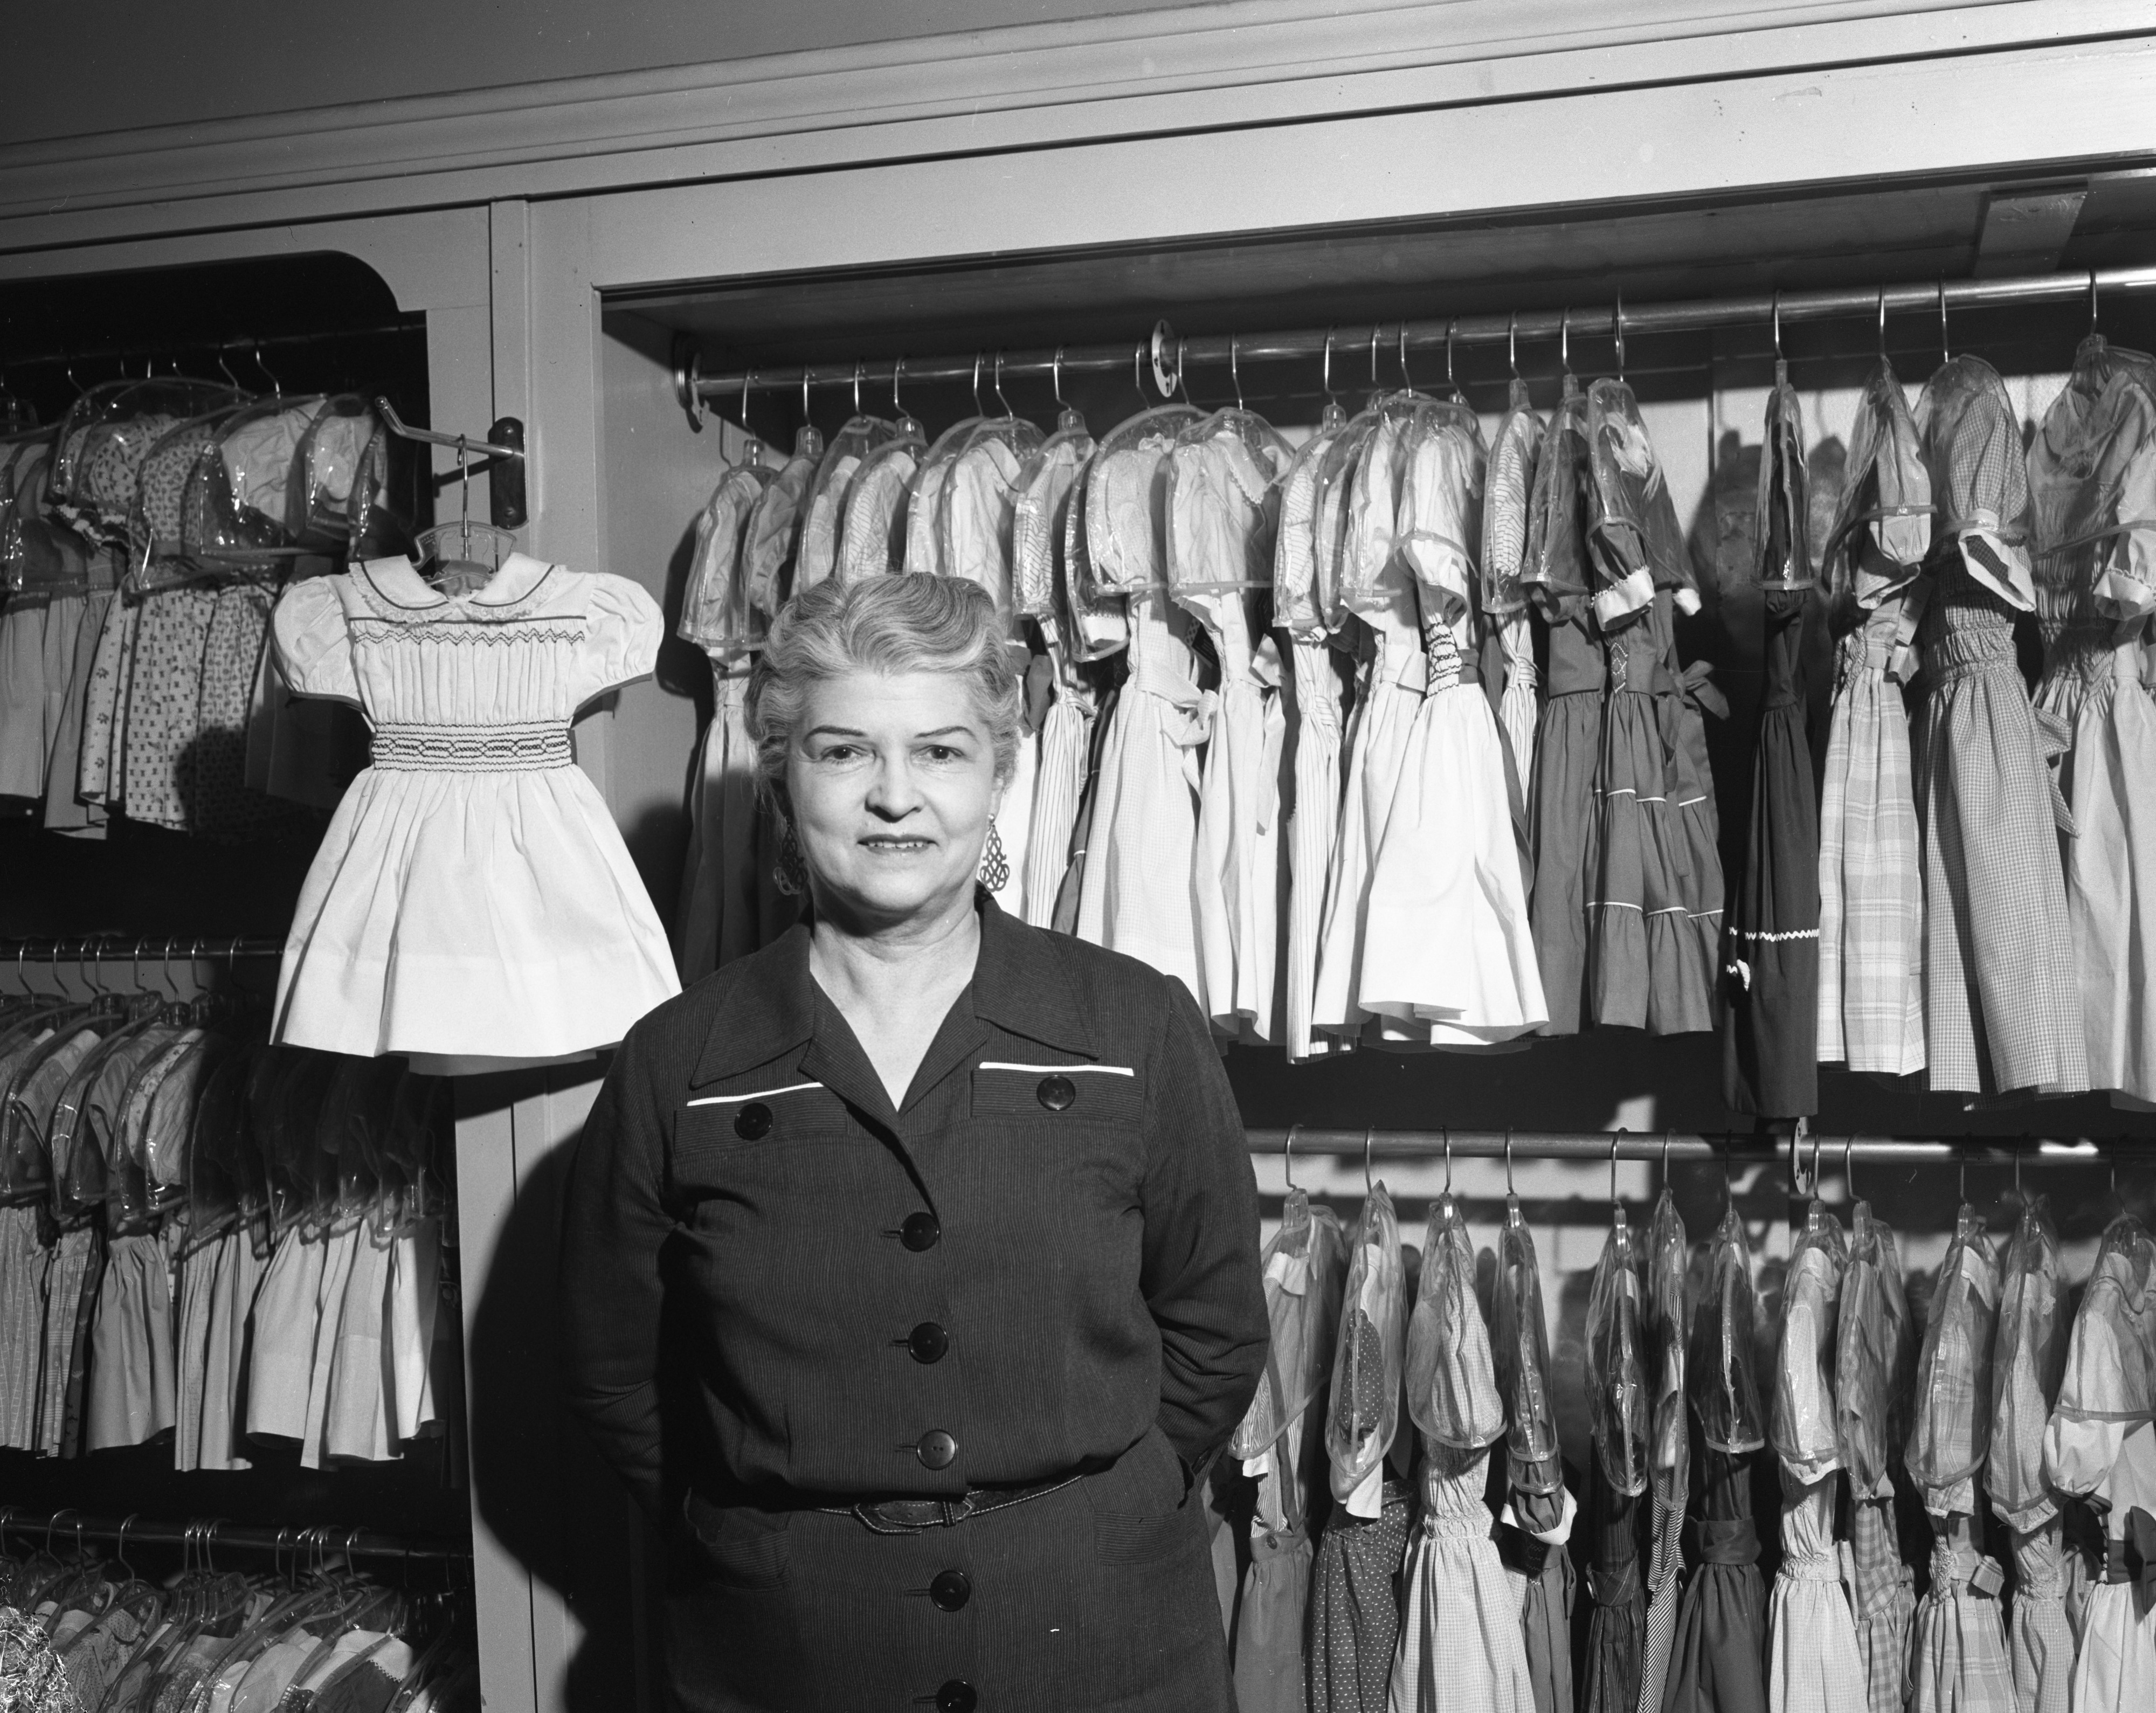 Bee Nickels Shop Owner Beatrice Nickels, January 1957 image